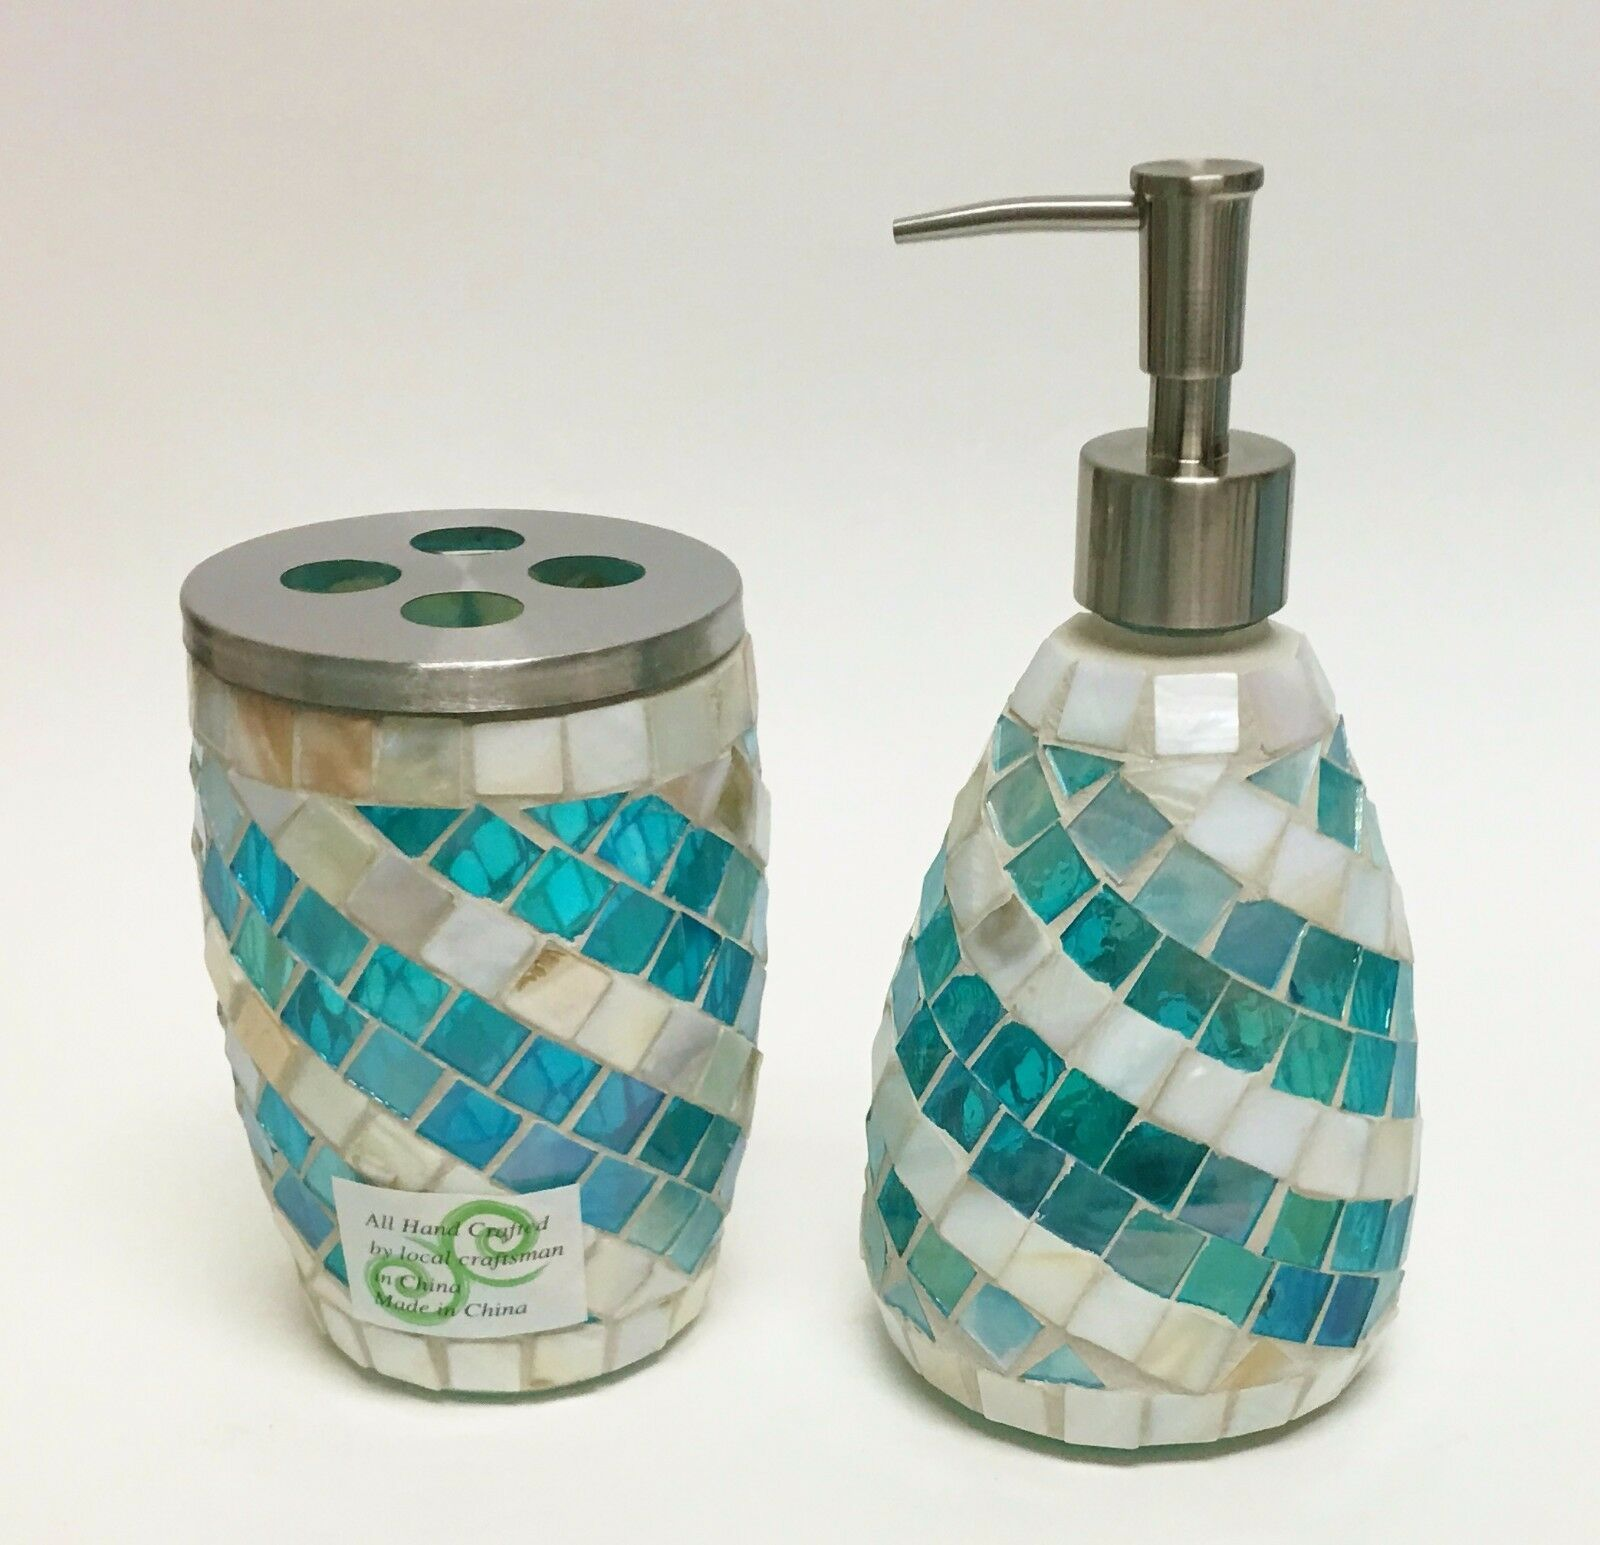 NEW COASTAL COLL. 2 PC Blau+Weiß MOP Glas MOSAIC SOAP DISPENSER+TOOTHBRUSH HLD